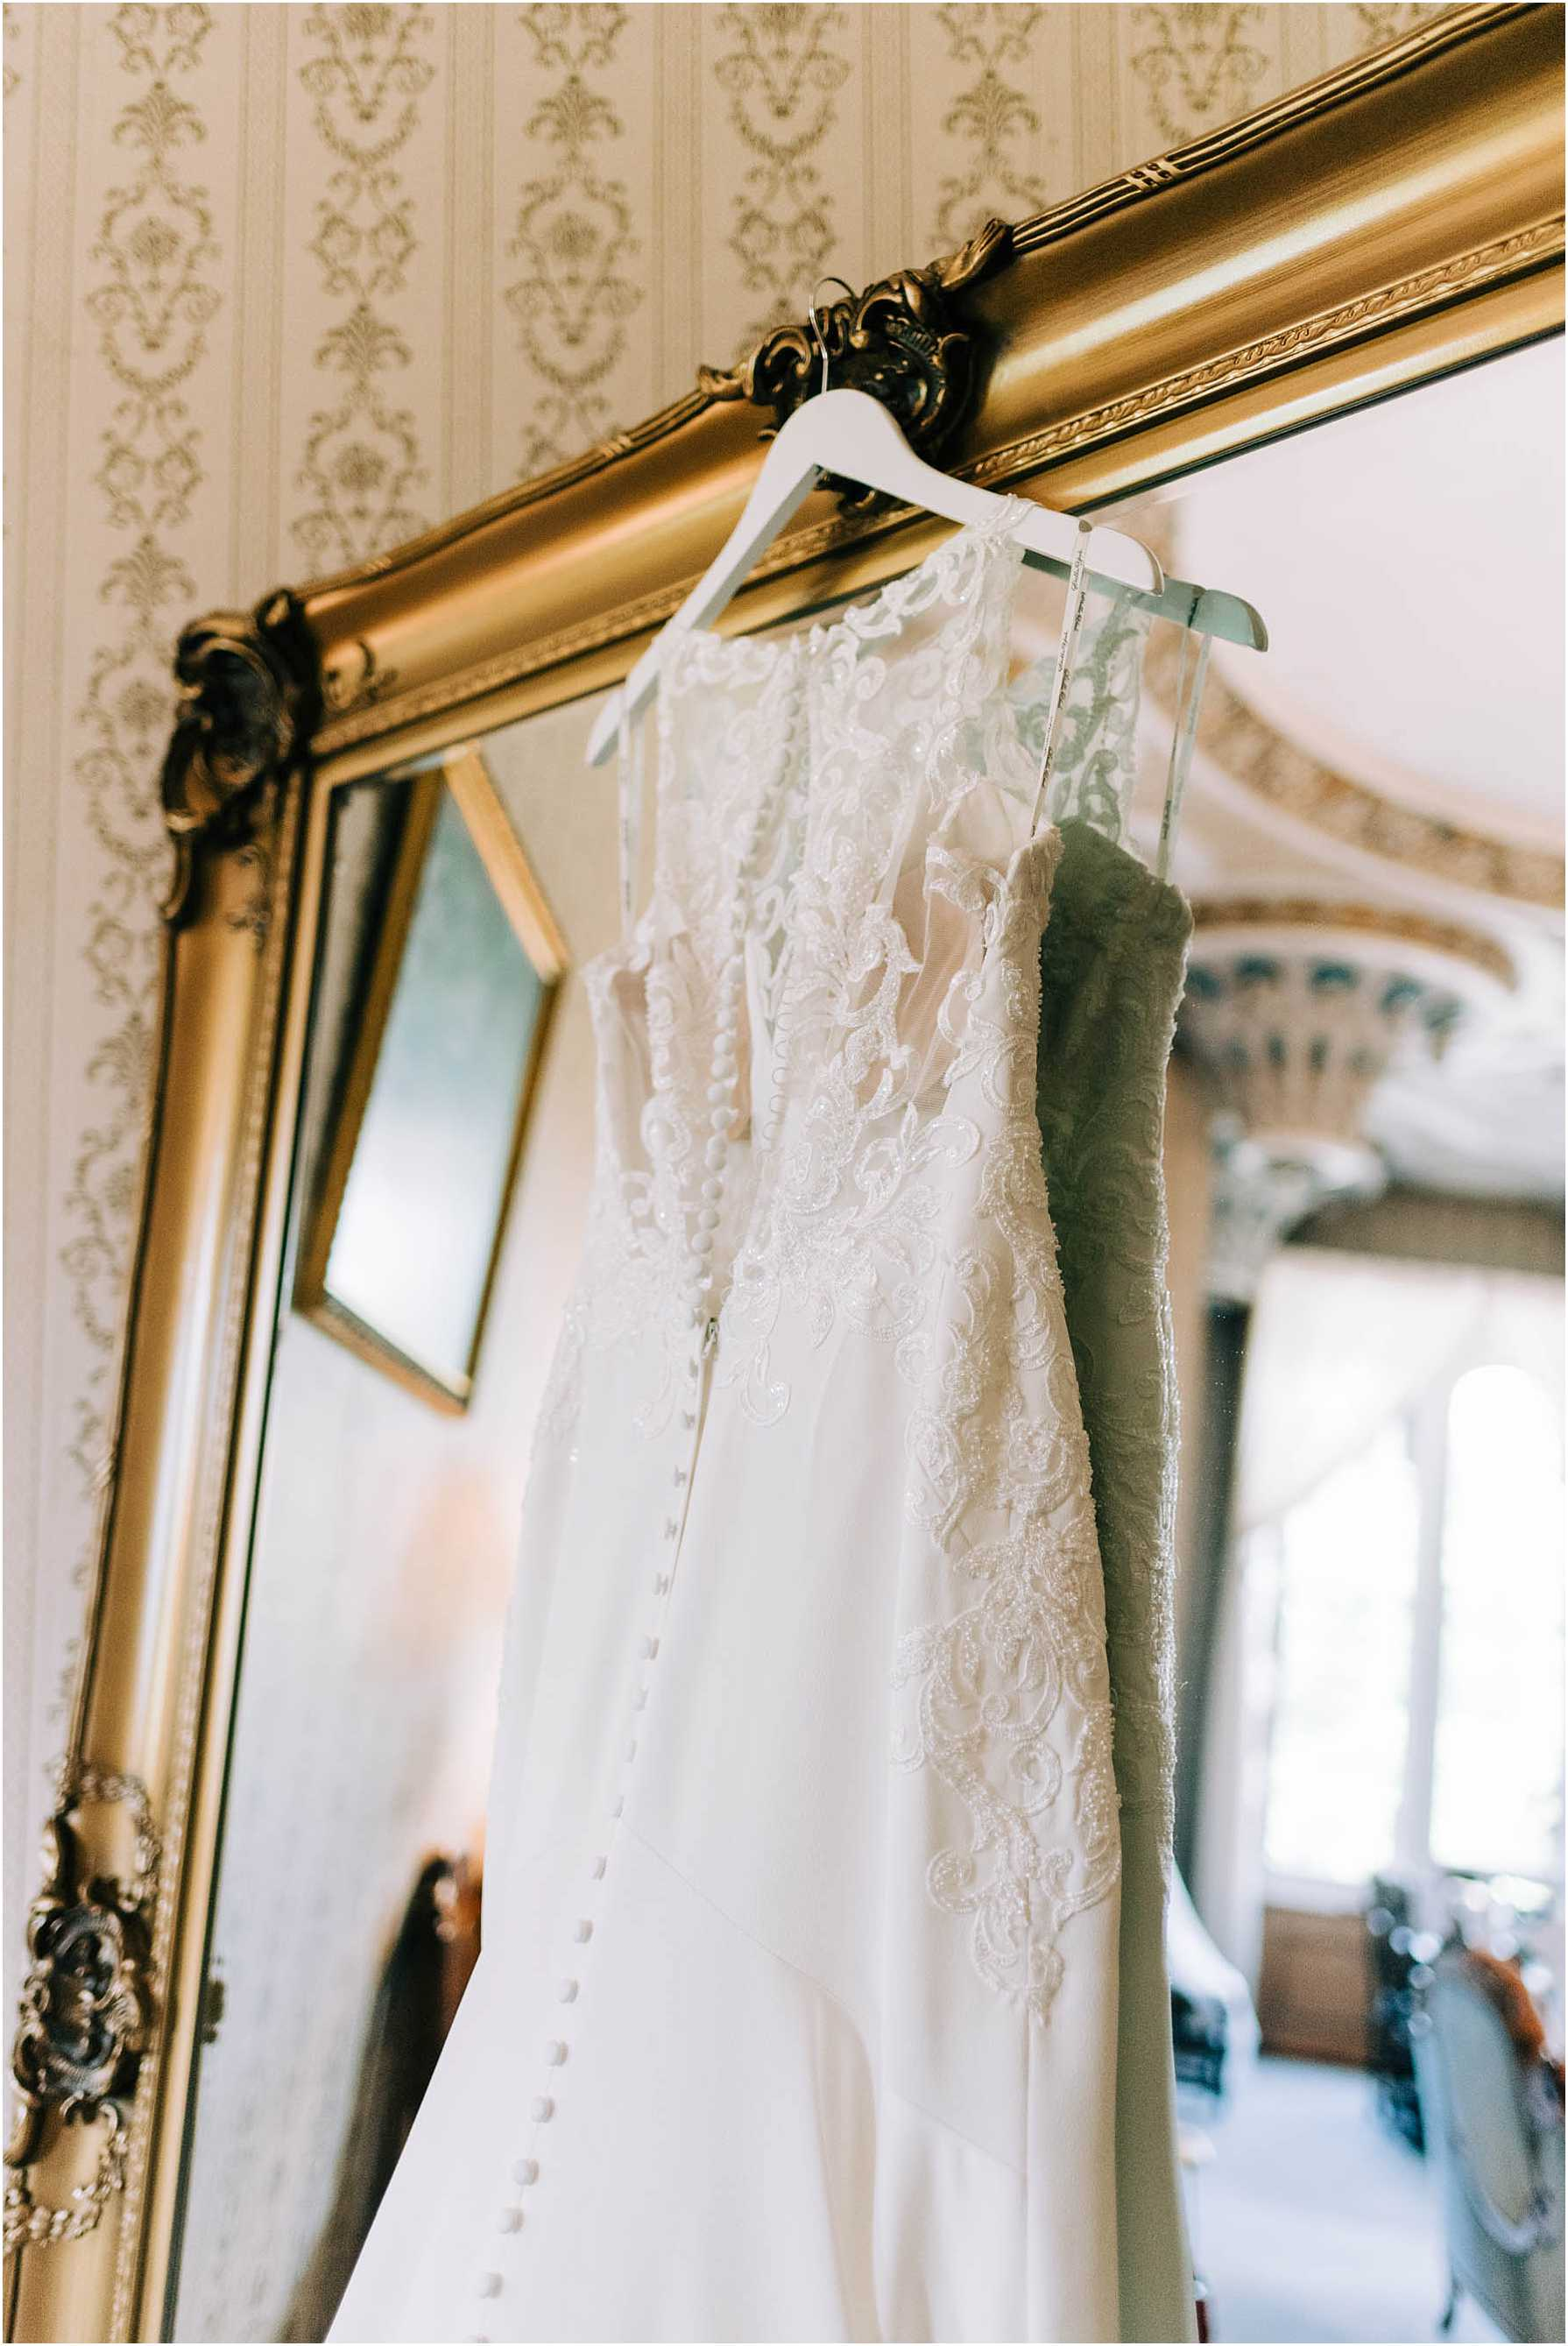 back of brides wedding dress hanging on a mirror